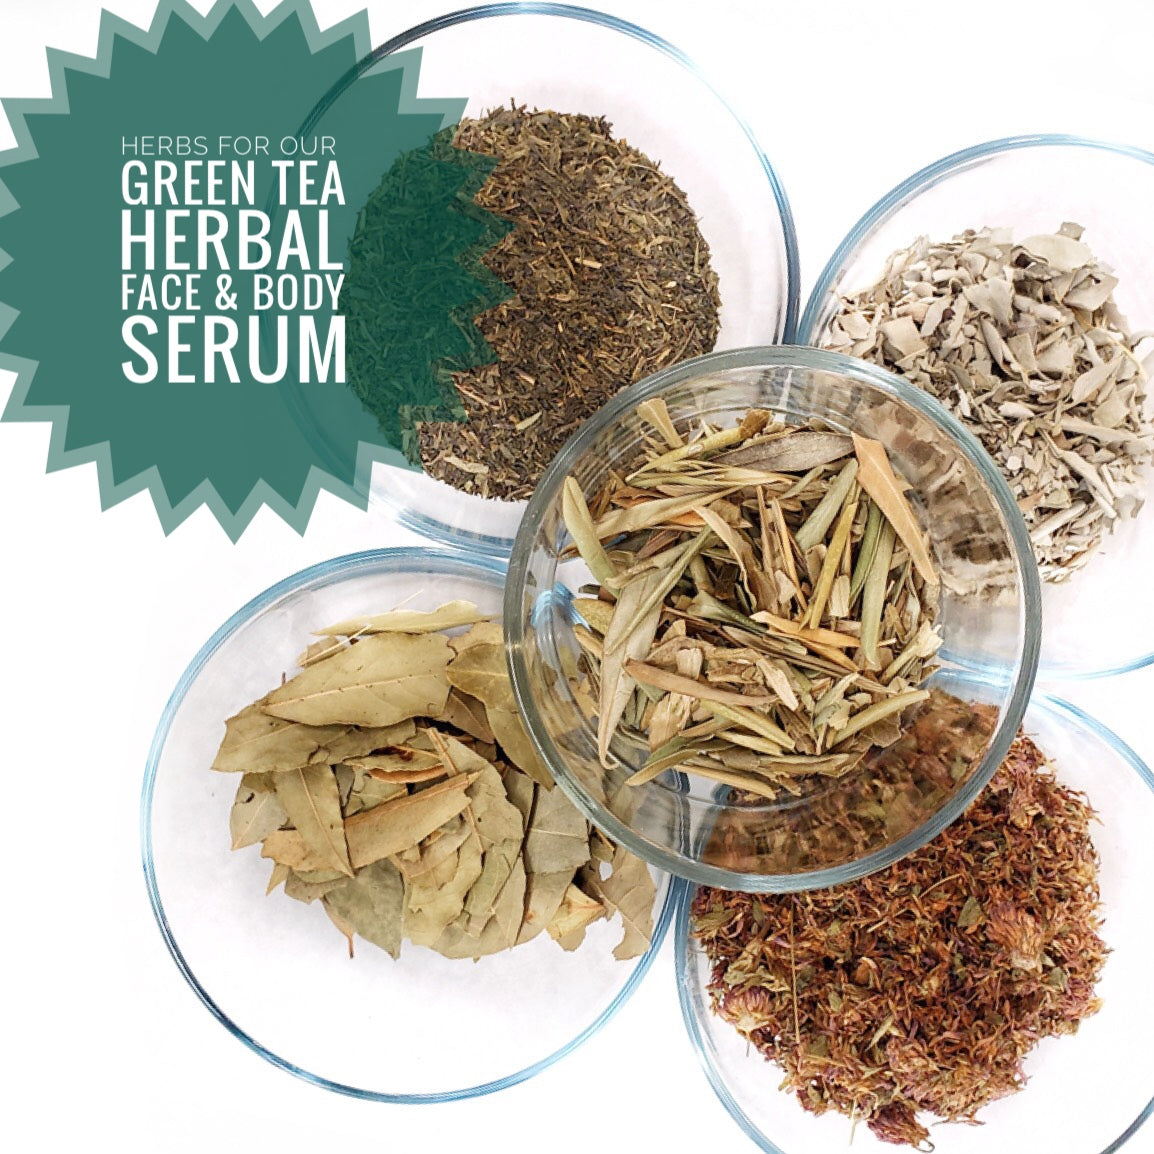 Green Tea Herbal - Face & Body Serum Experiment